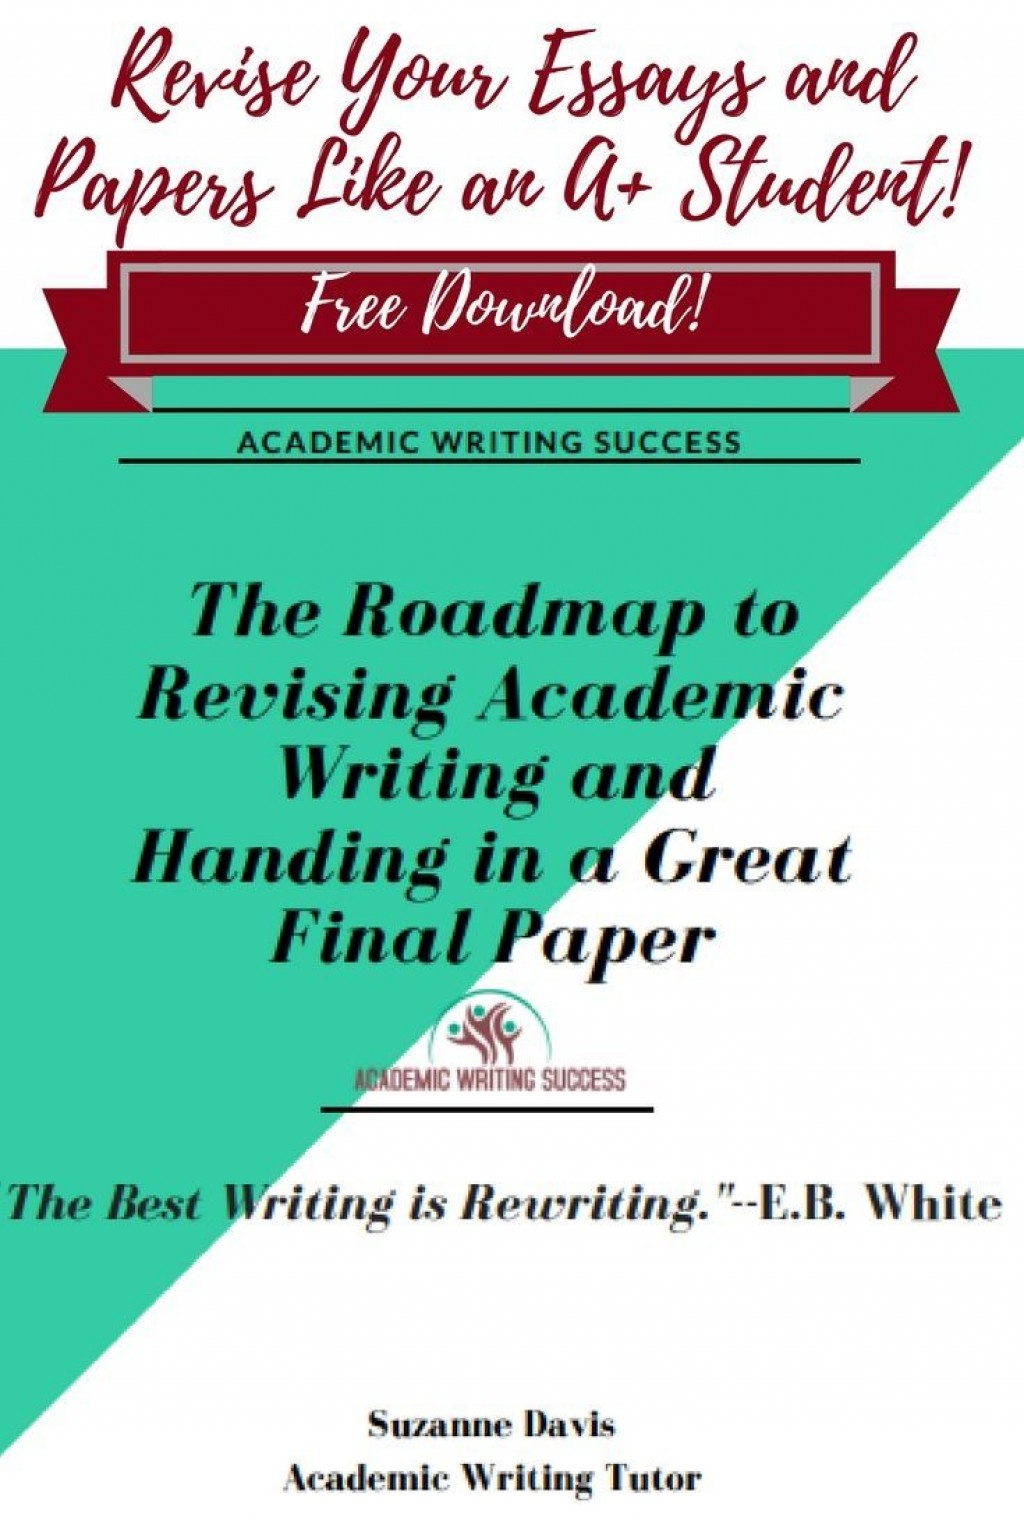 021 Research Paper Get Help Stunning With Writing A Large